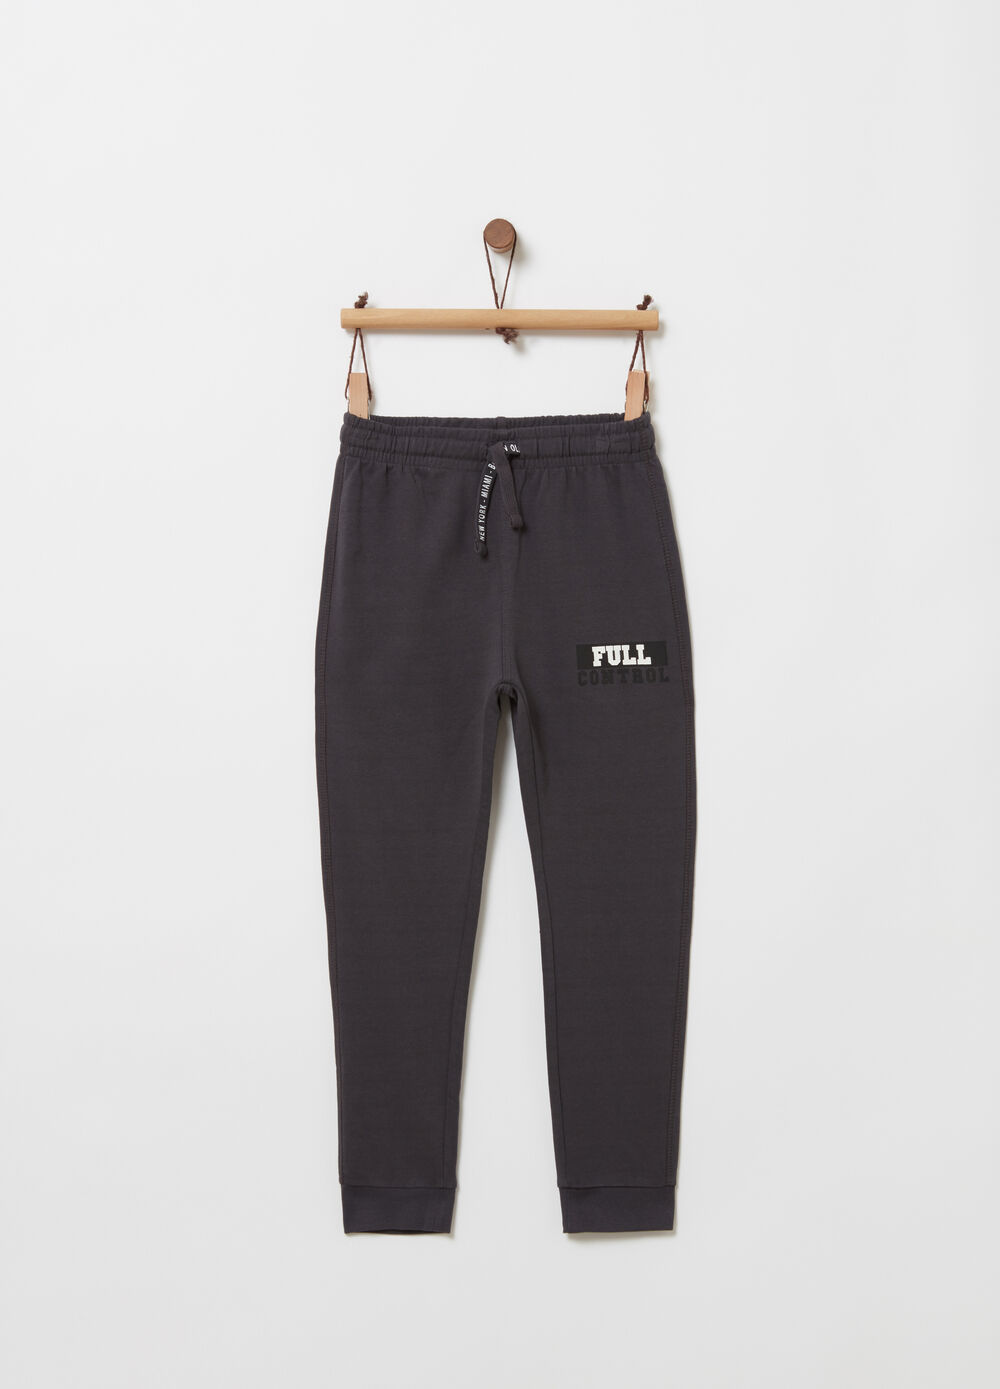 Pantaloni regular fit con tasca sul retro